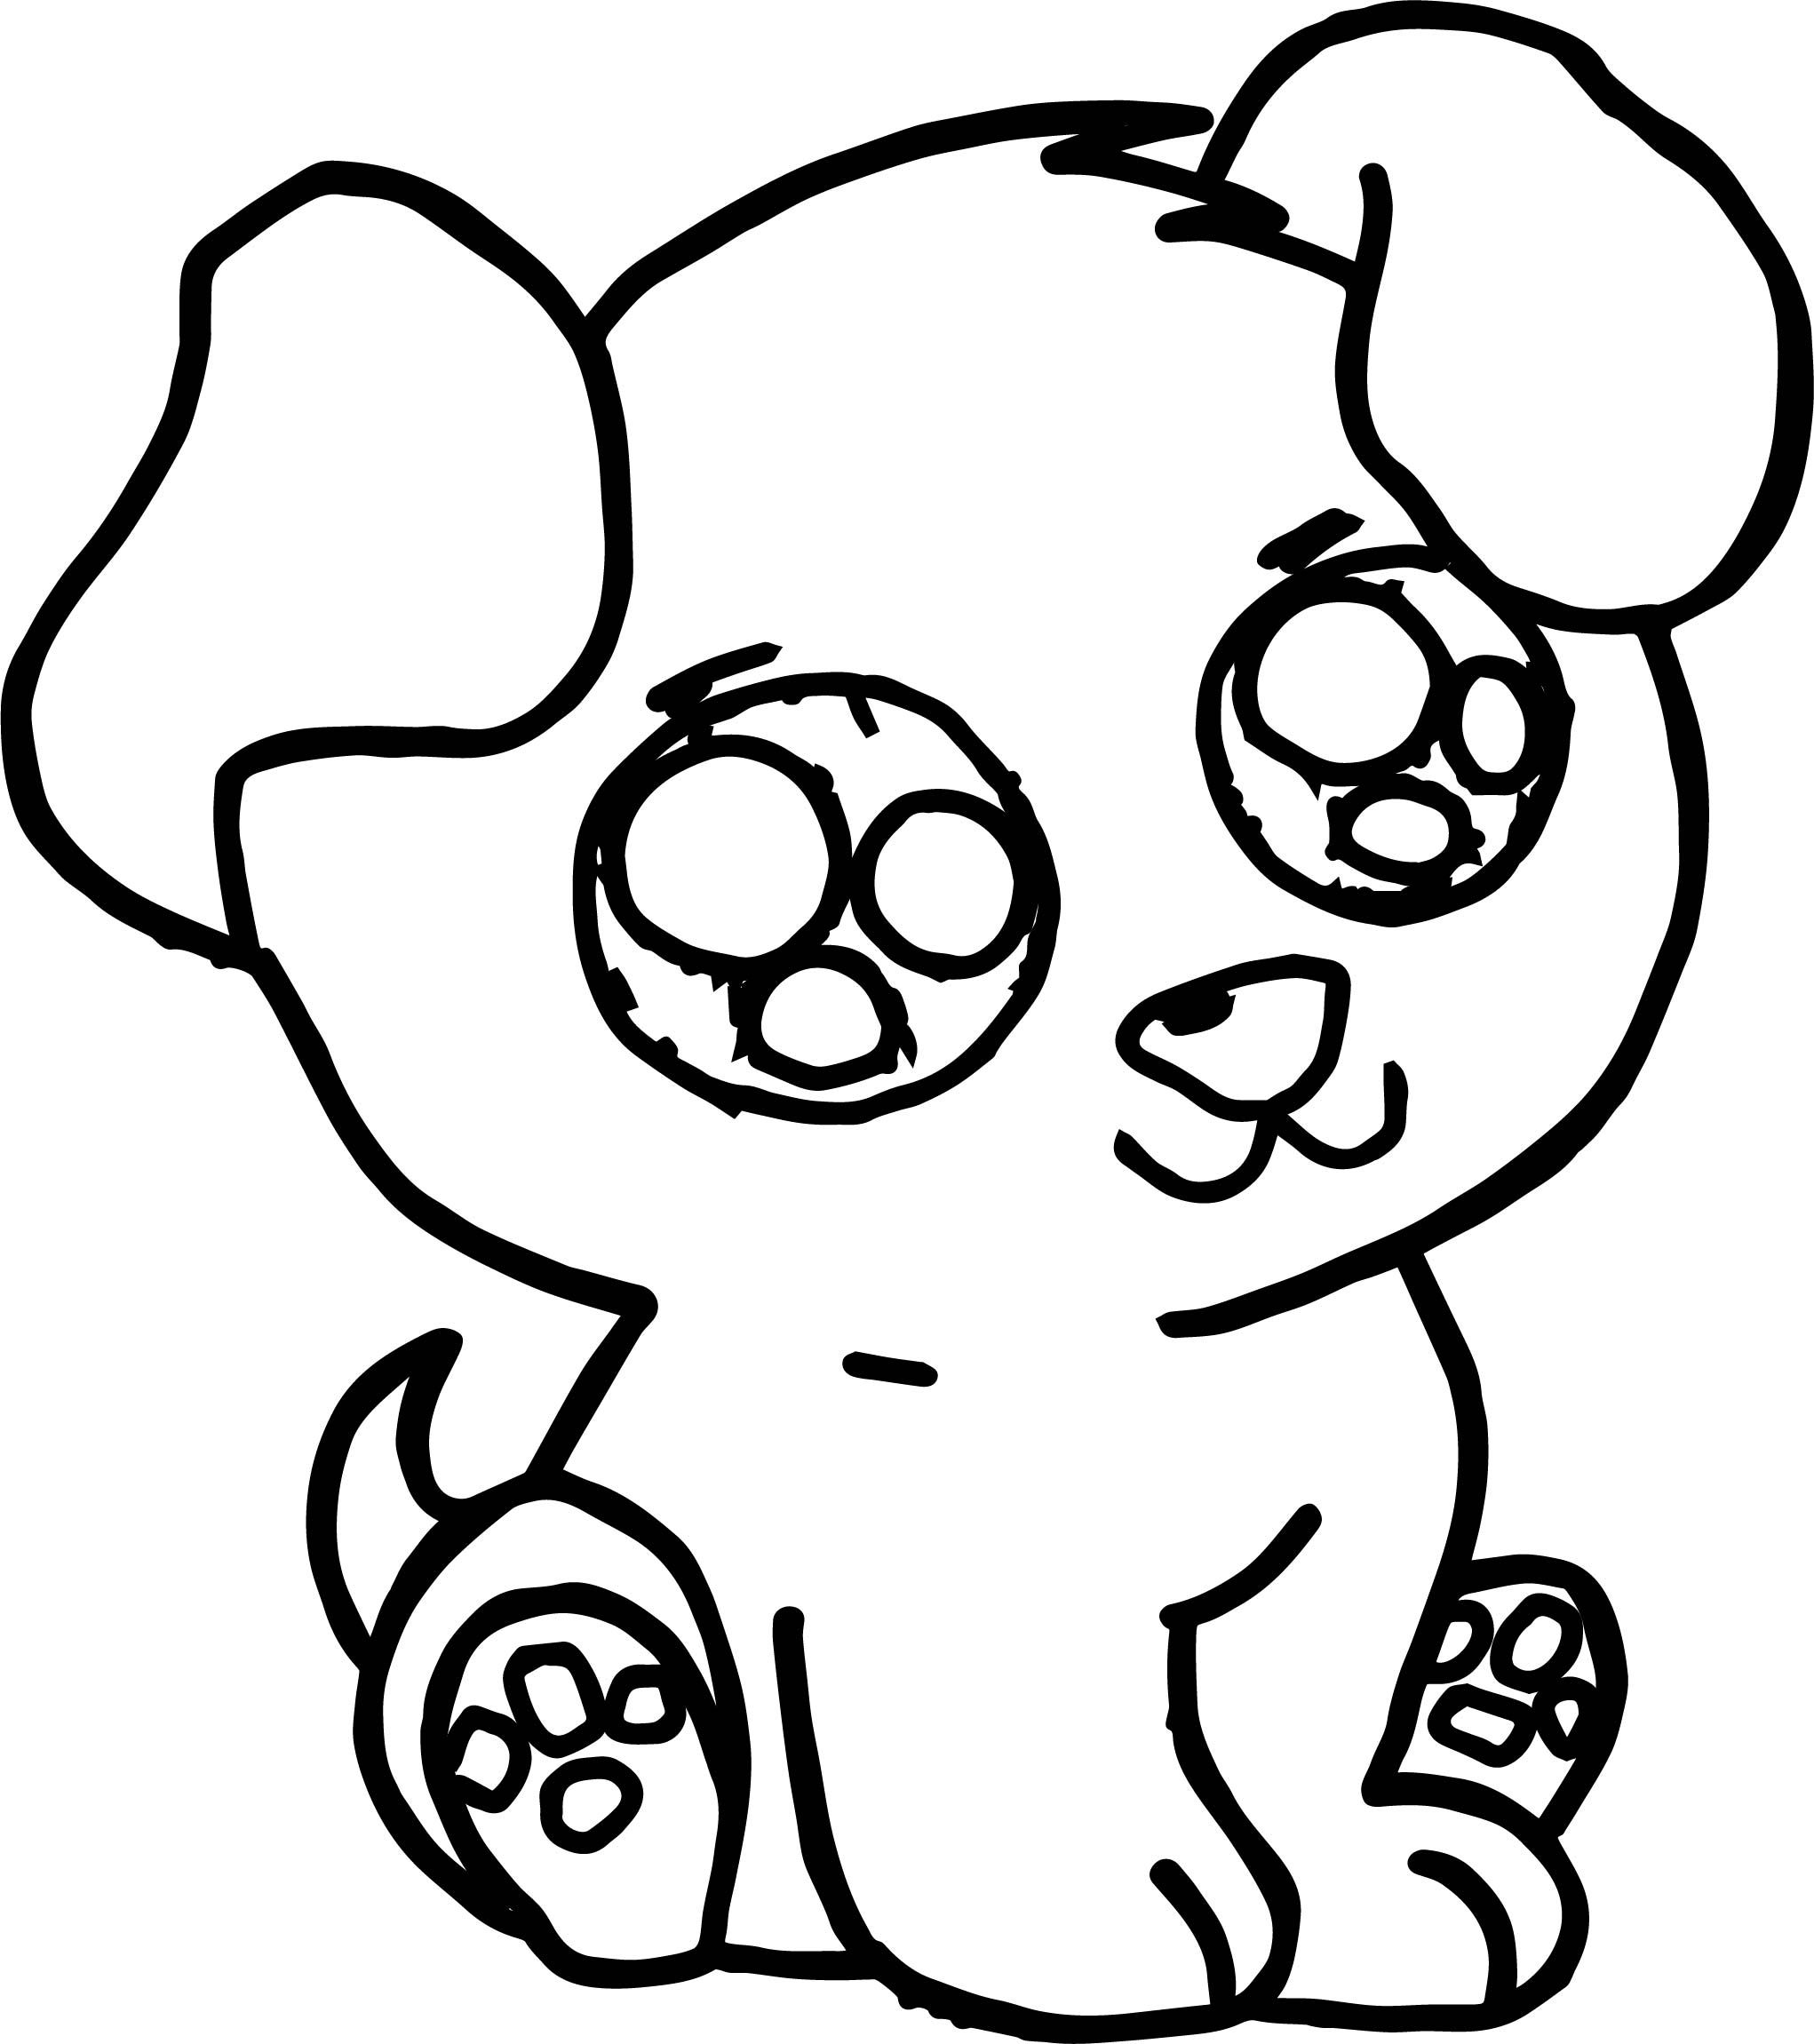 Awesome Cute Puppy Free Images Puppy Dog Coloring Page Puppy Coloring Pages Dog Coloring Page Animal Coloring Pages